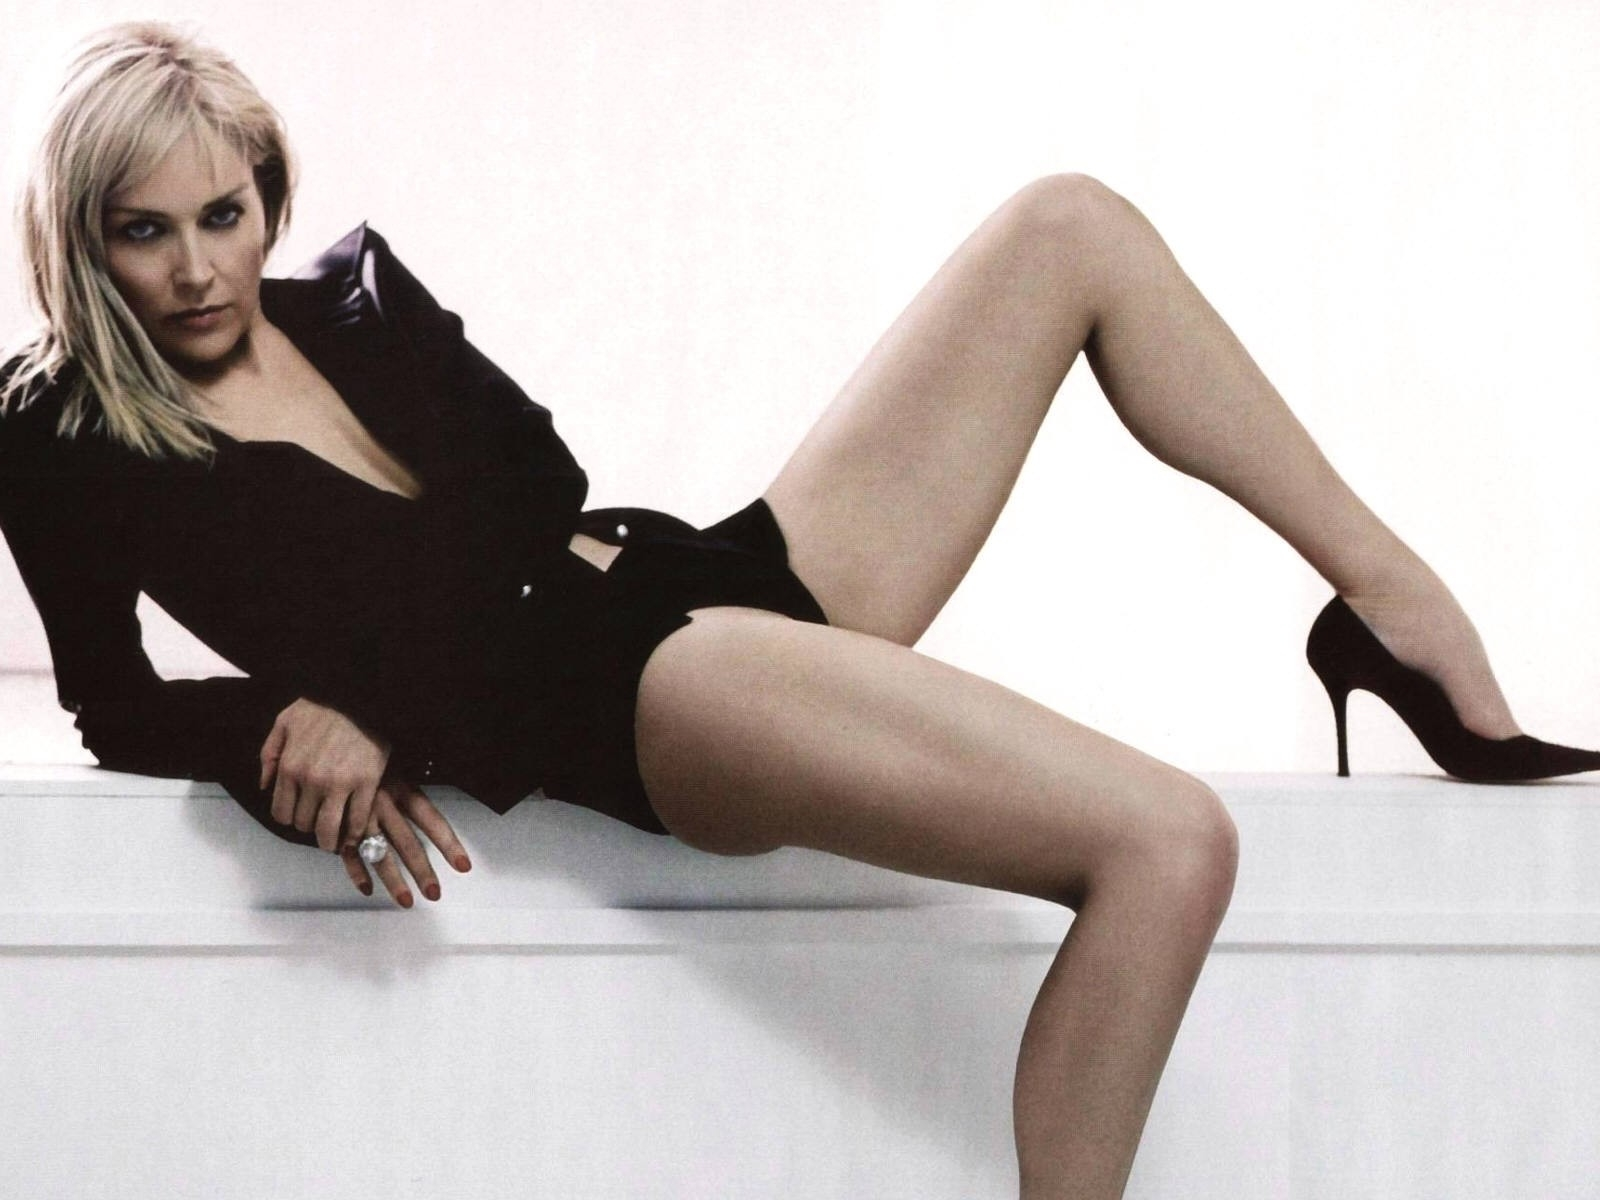 Wallpaper per il desktop di Sharon Stone